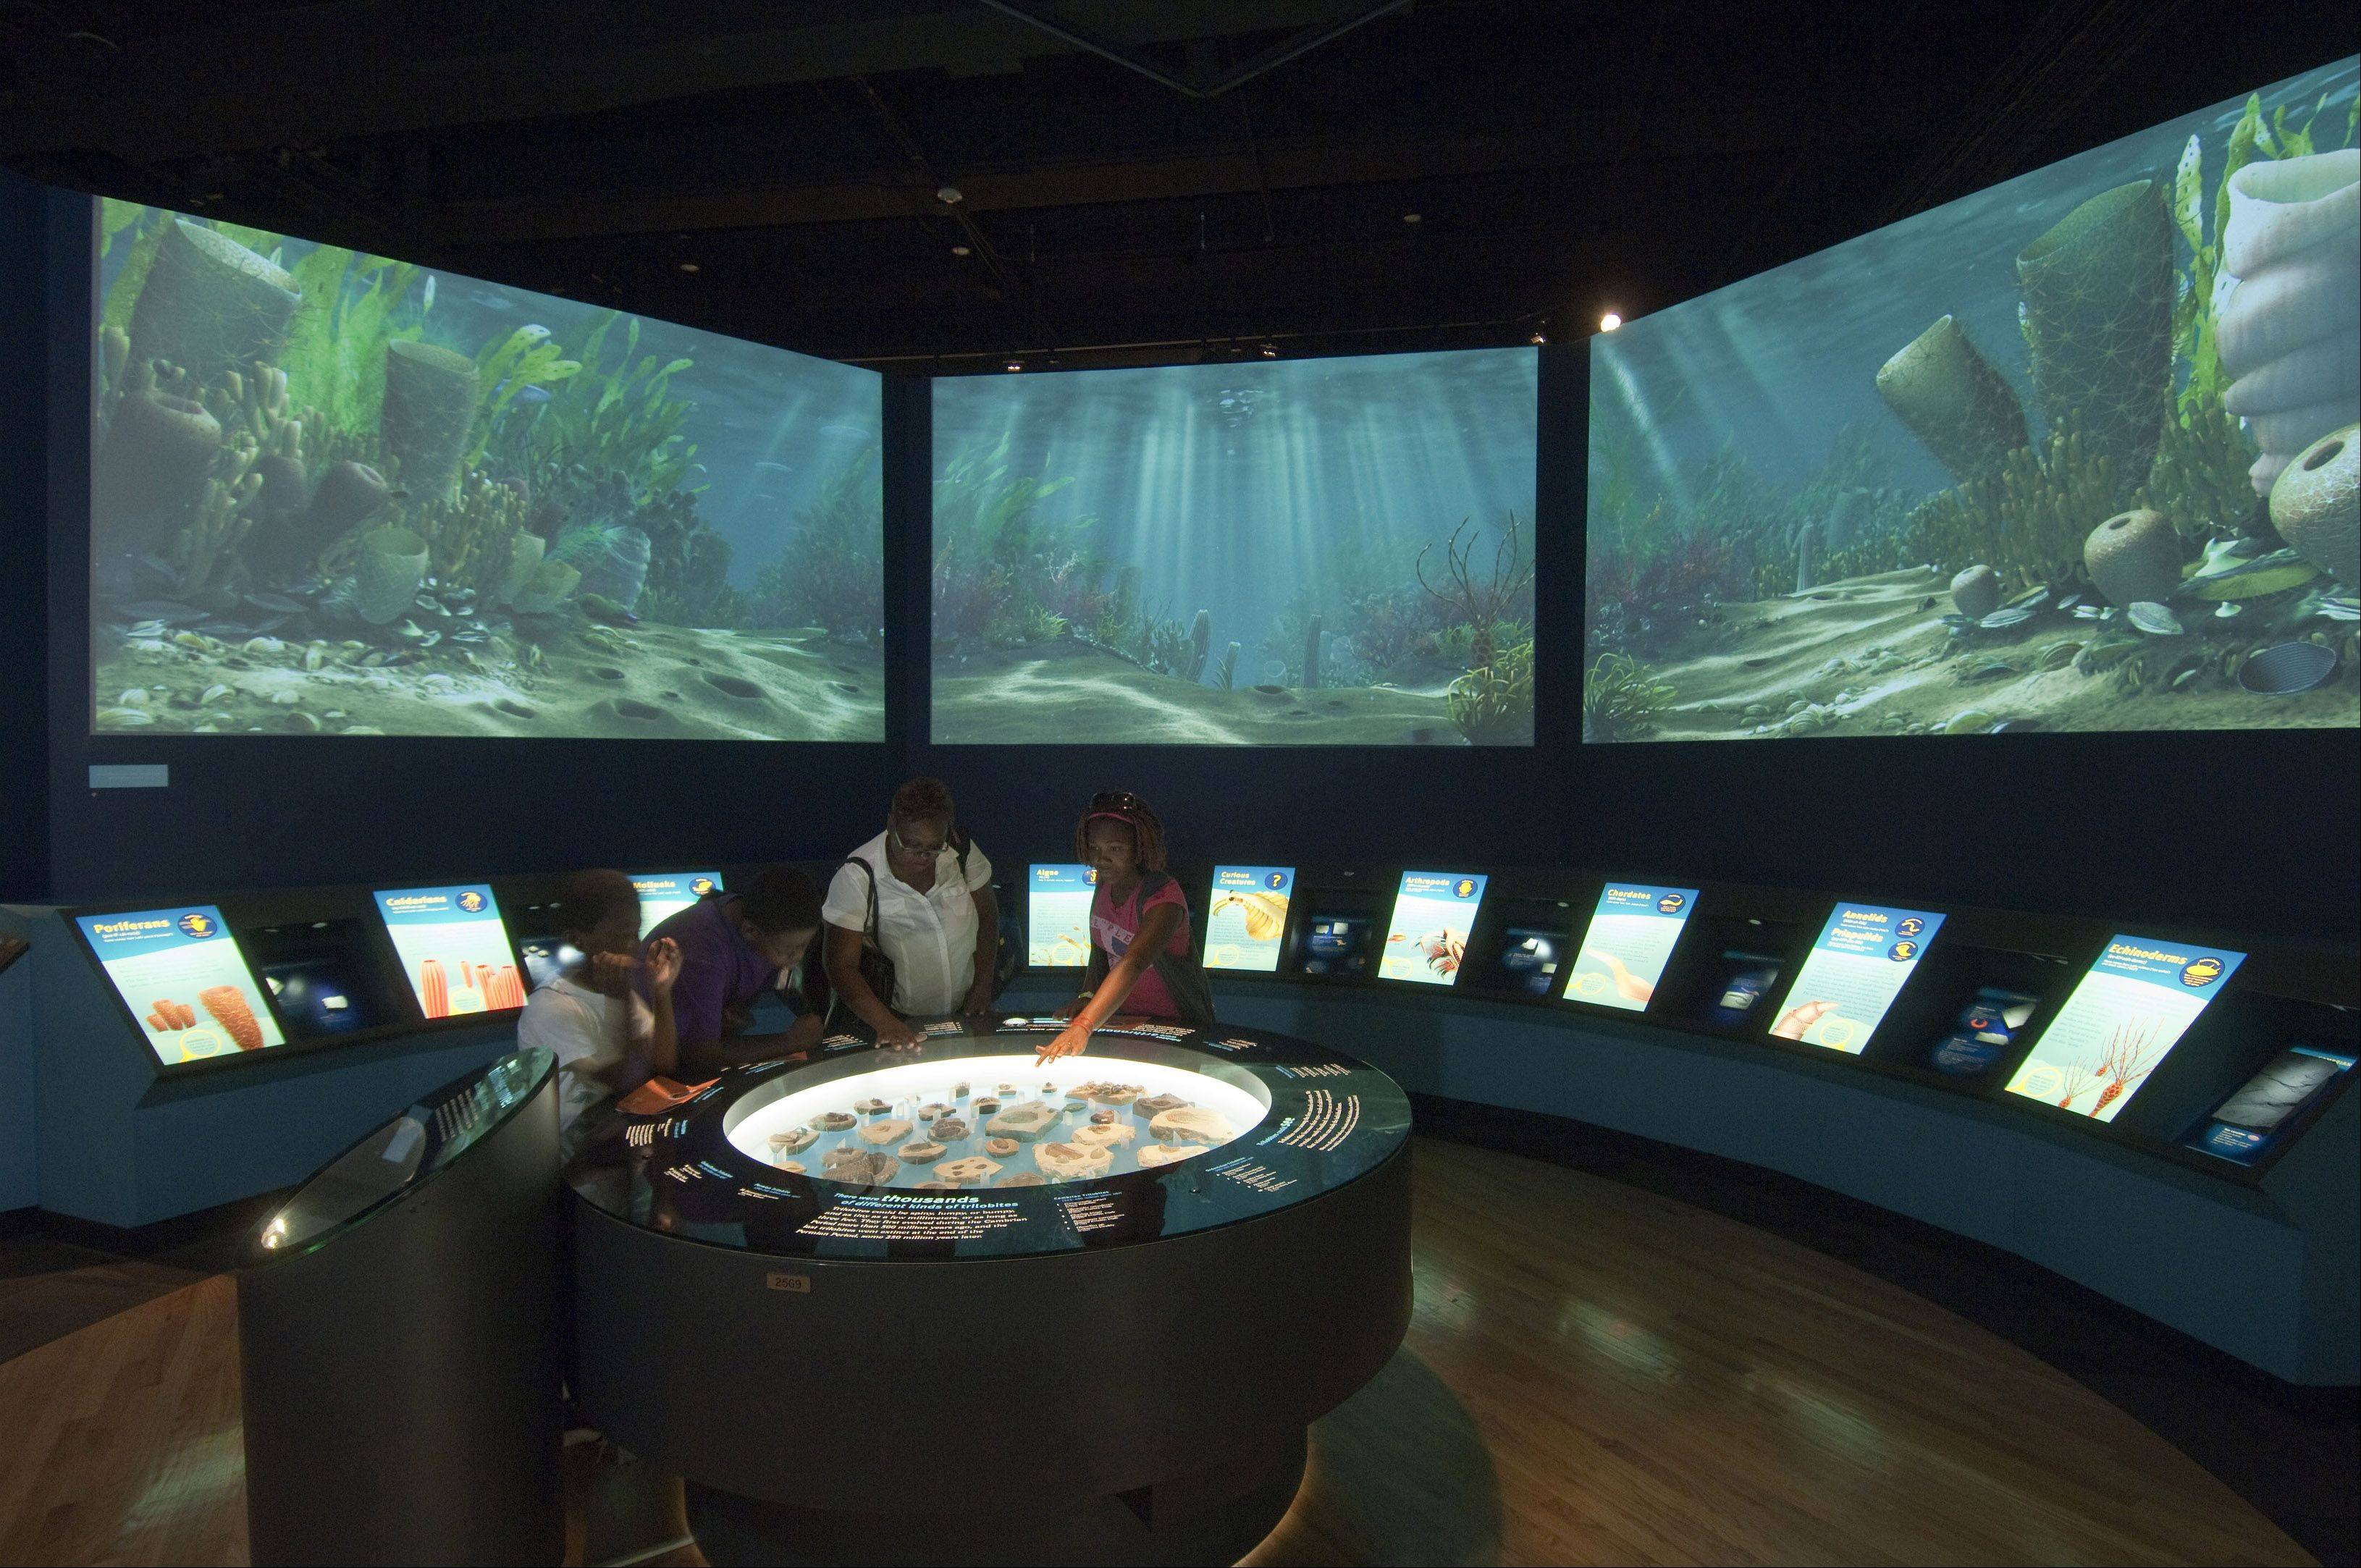 An image of sea life during the Cambrian period, the time spanning 542 million to 488 million years ago when life-forms quickly diversified, is seen in this curved projection surrounding visitors at the Field Museum�s Evolving Planet exhibit.